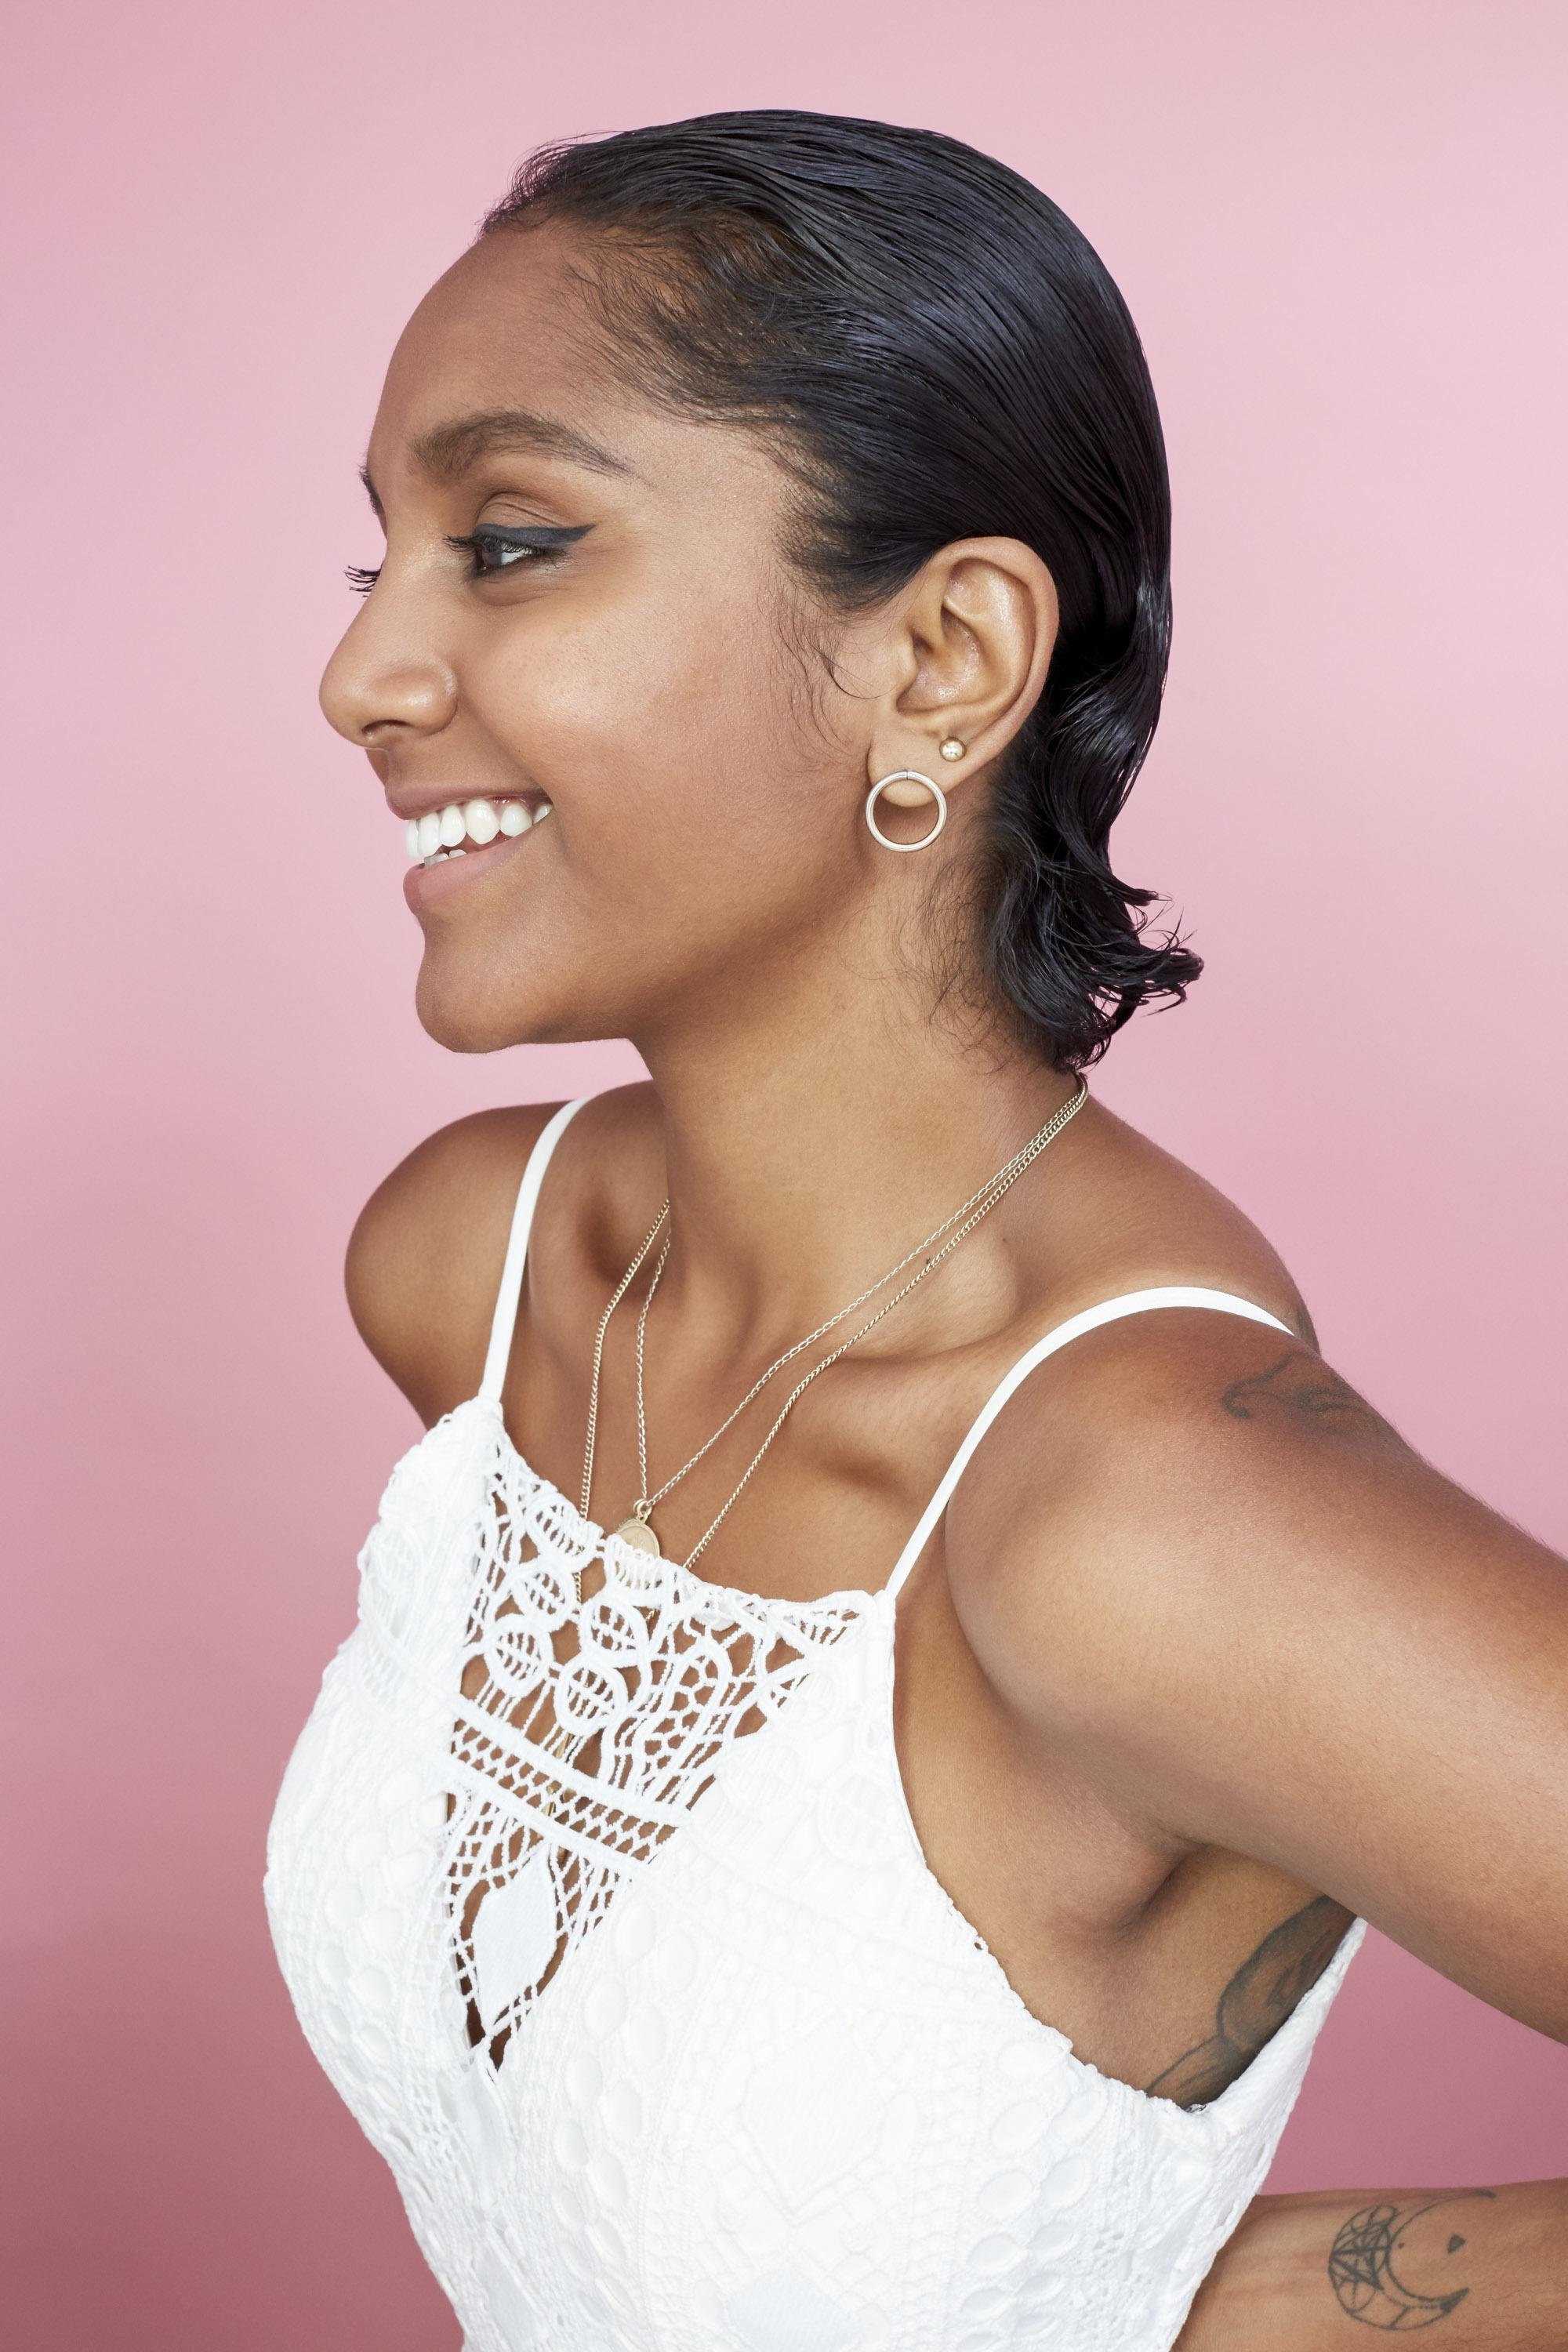 Short brown hairstyles: Side view photo of a